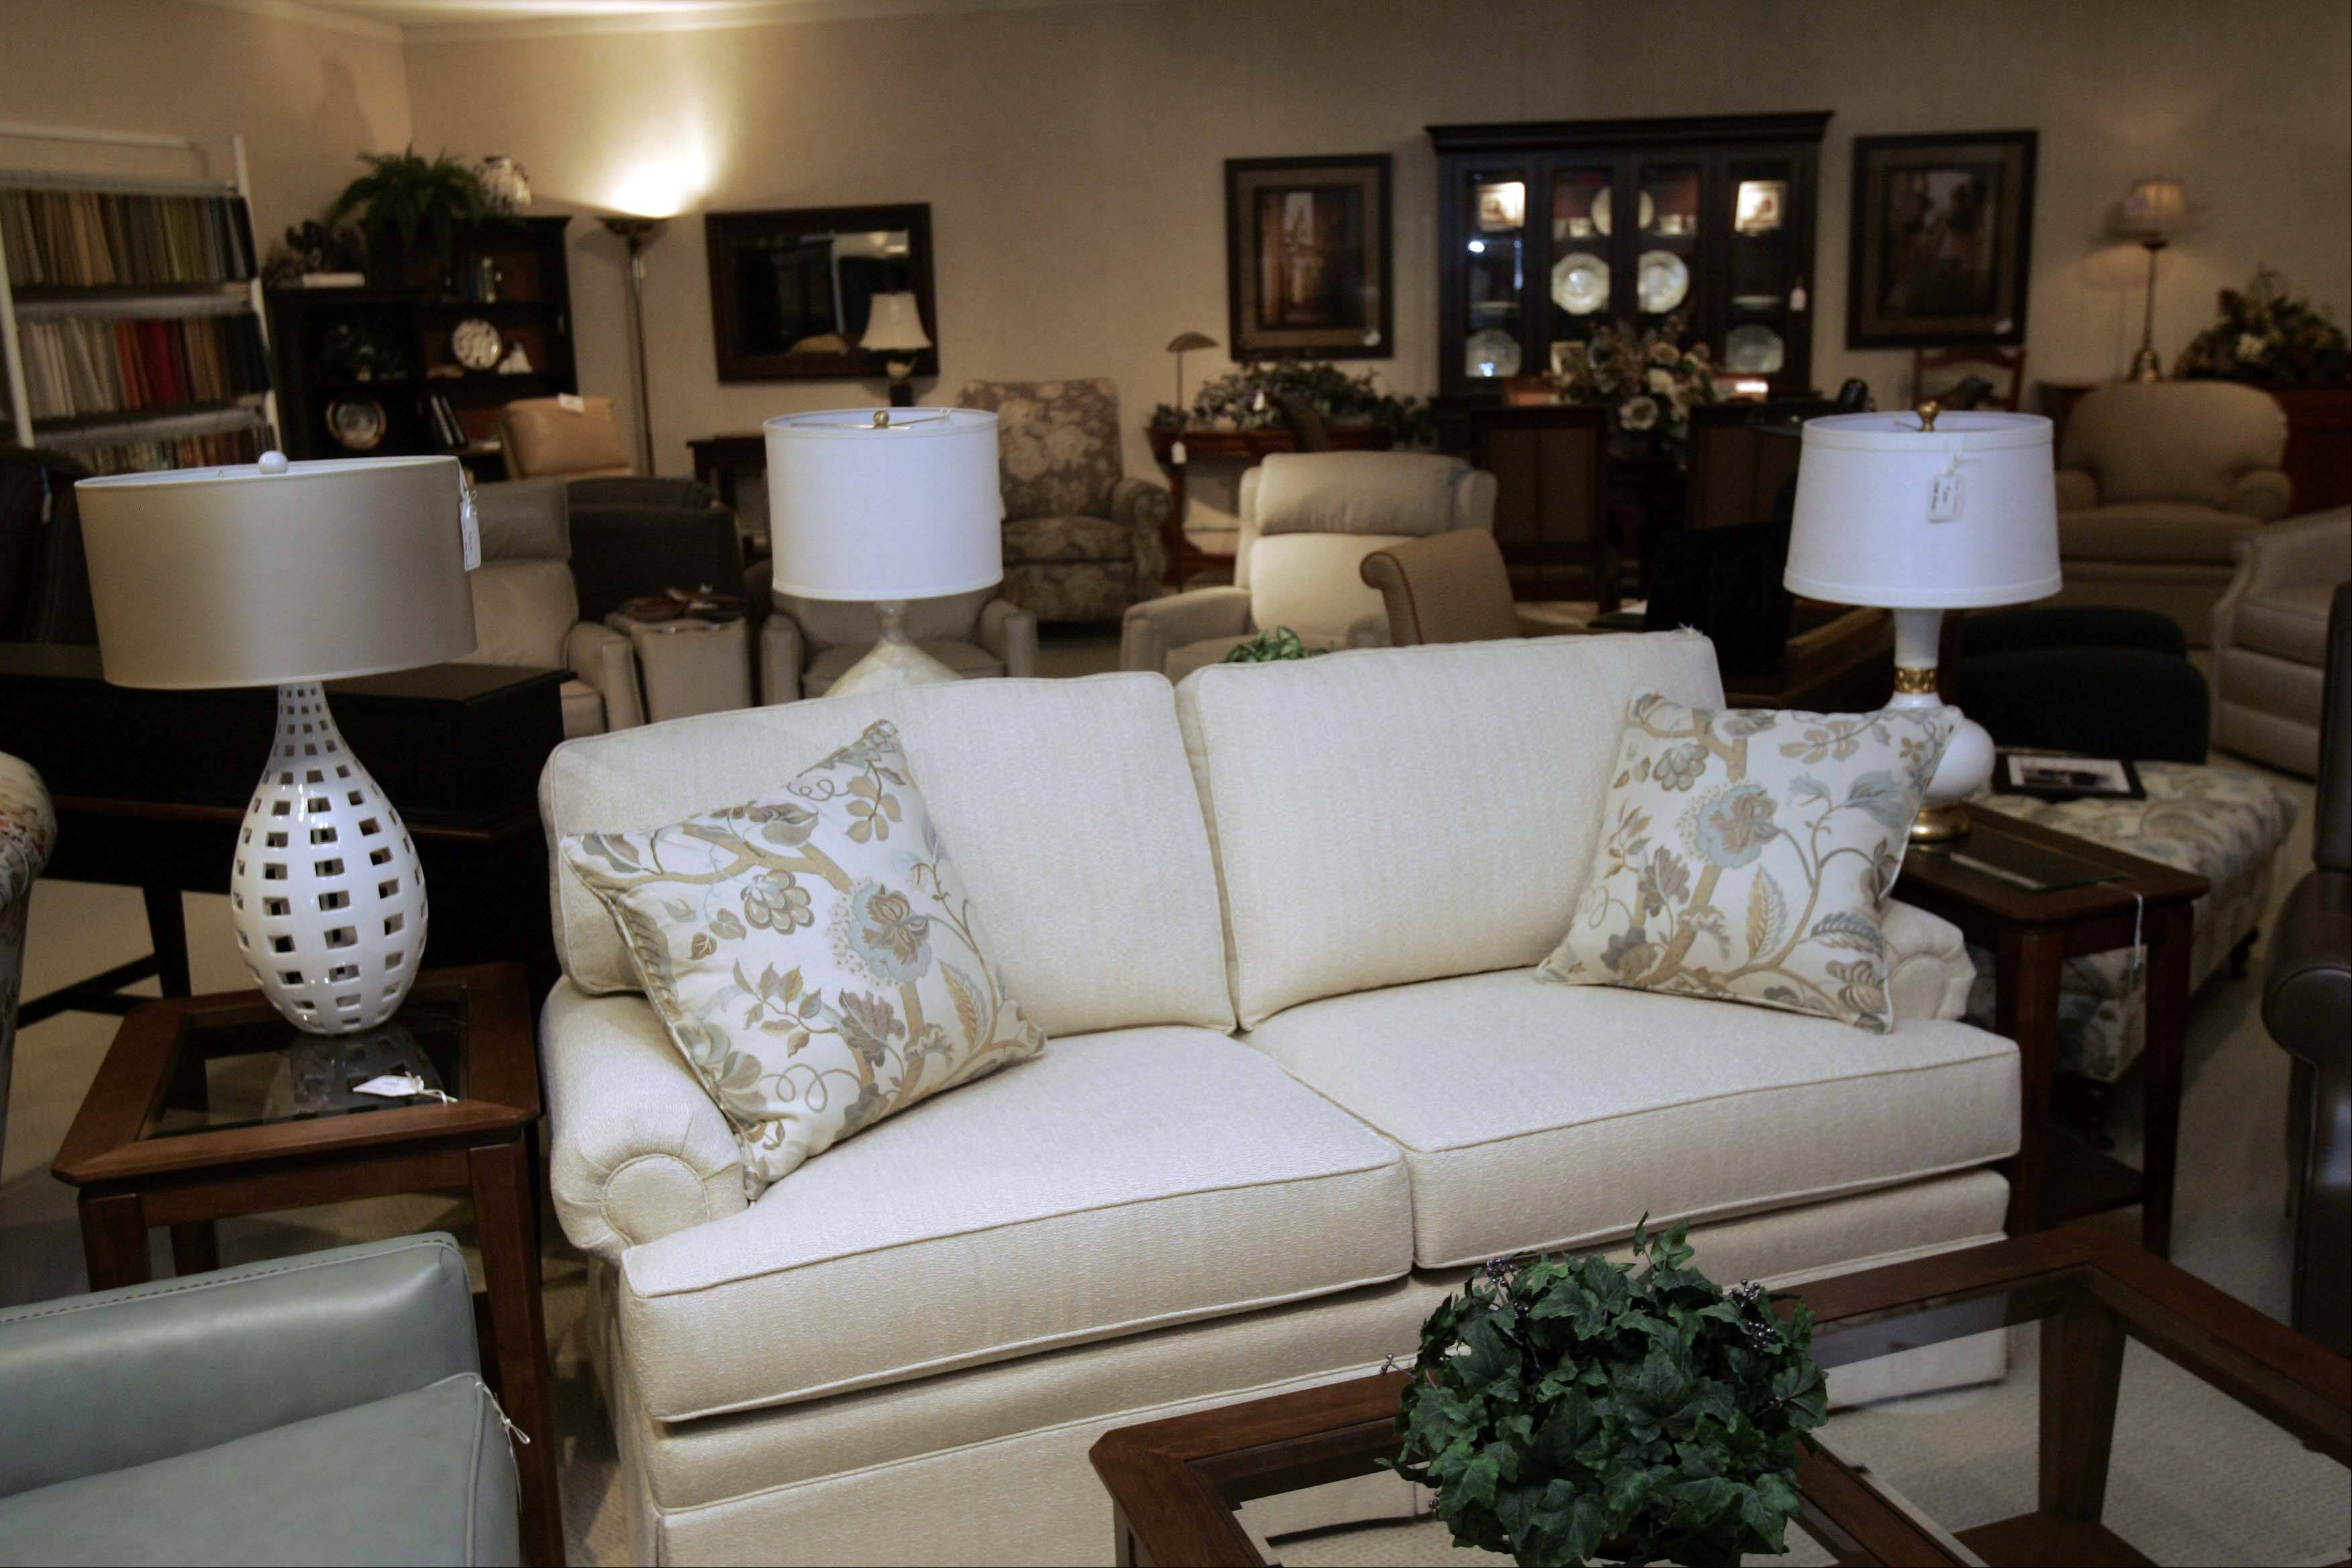 Beautiful Dow Furniture In North Aurora Offers Some Smaller And Compact Furniture For  Those Looking To Downsize